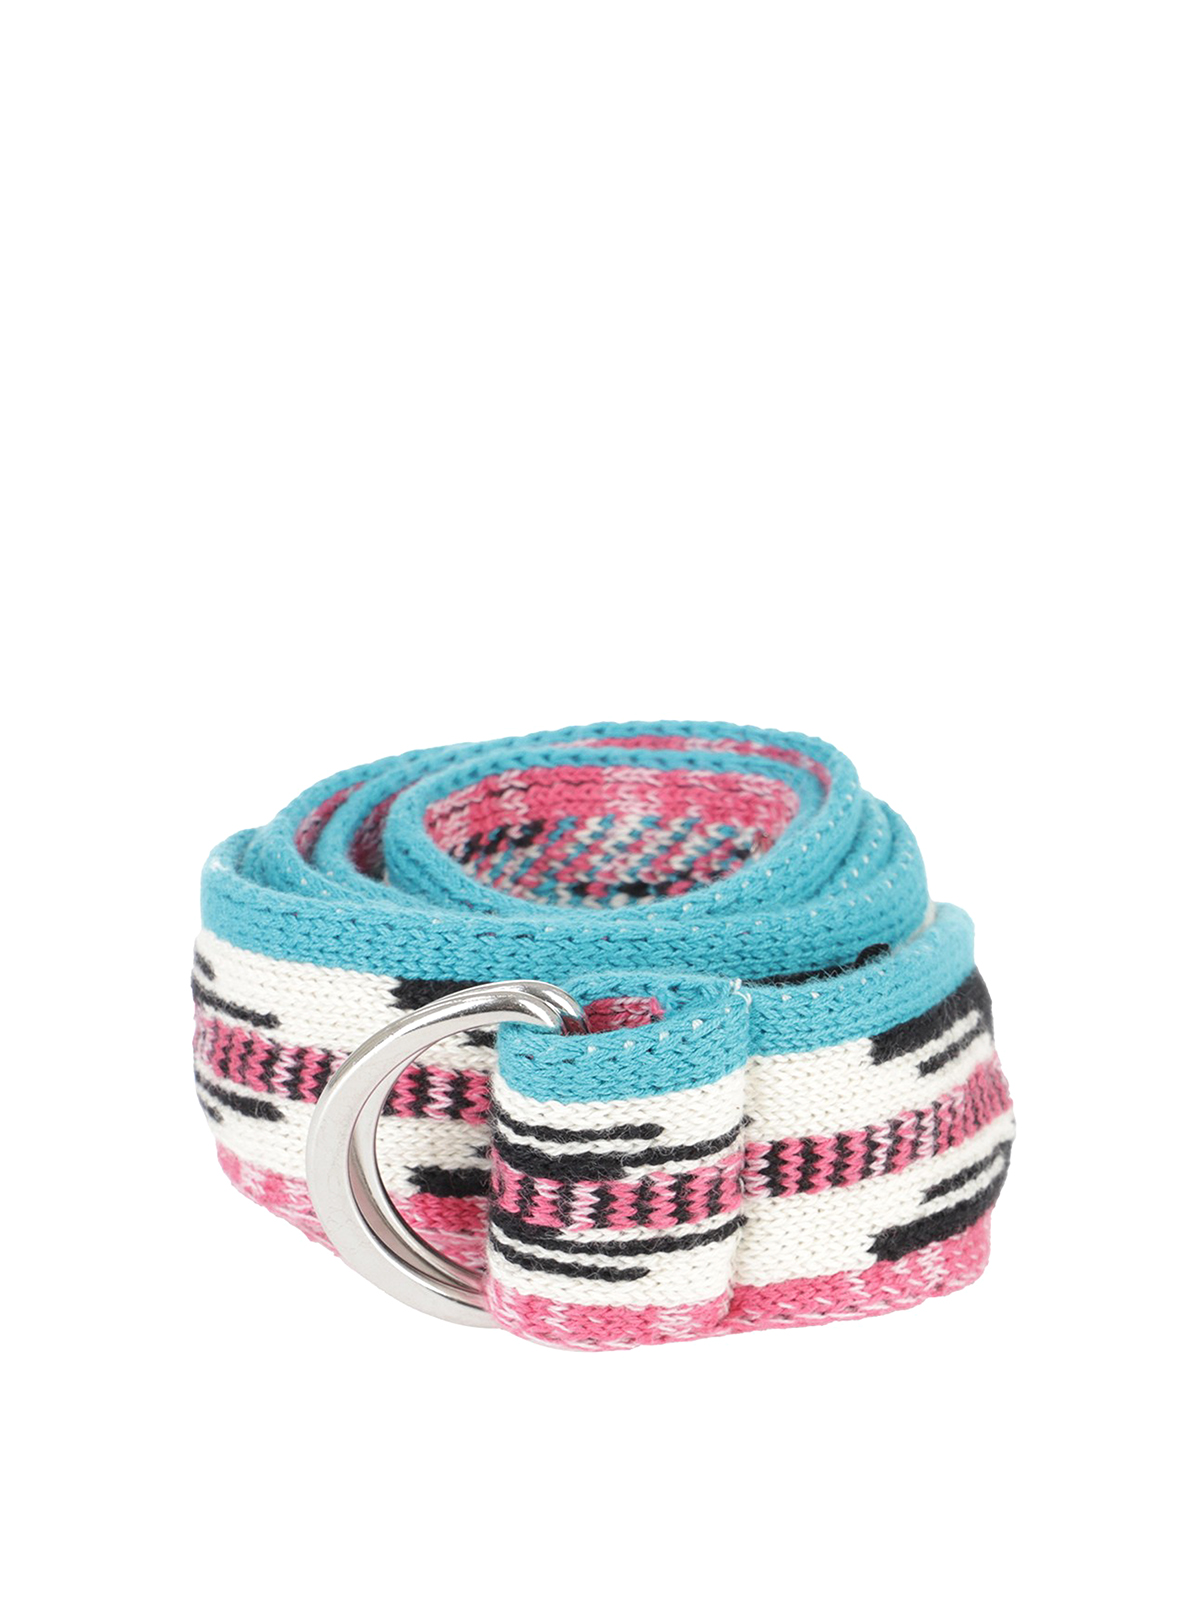 Isabel Marant Belts BALKNIT BELT